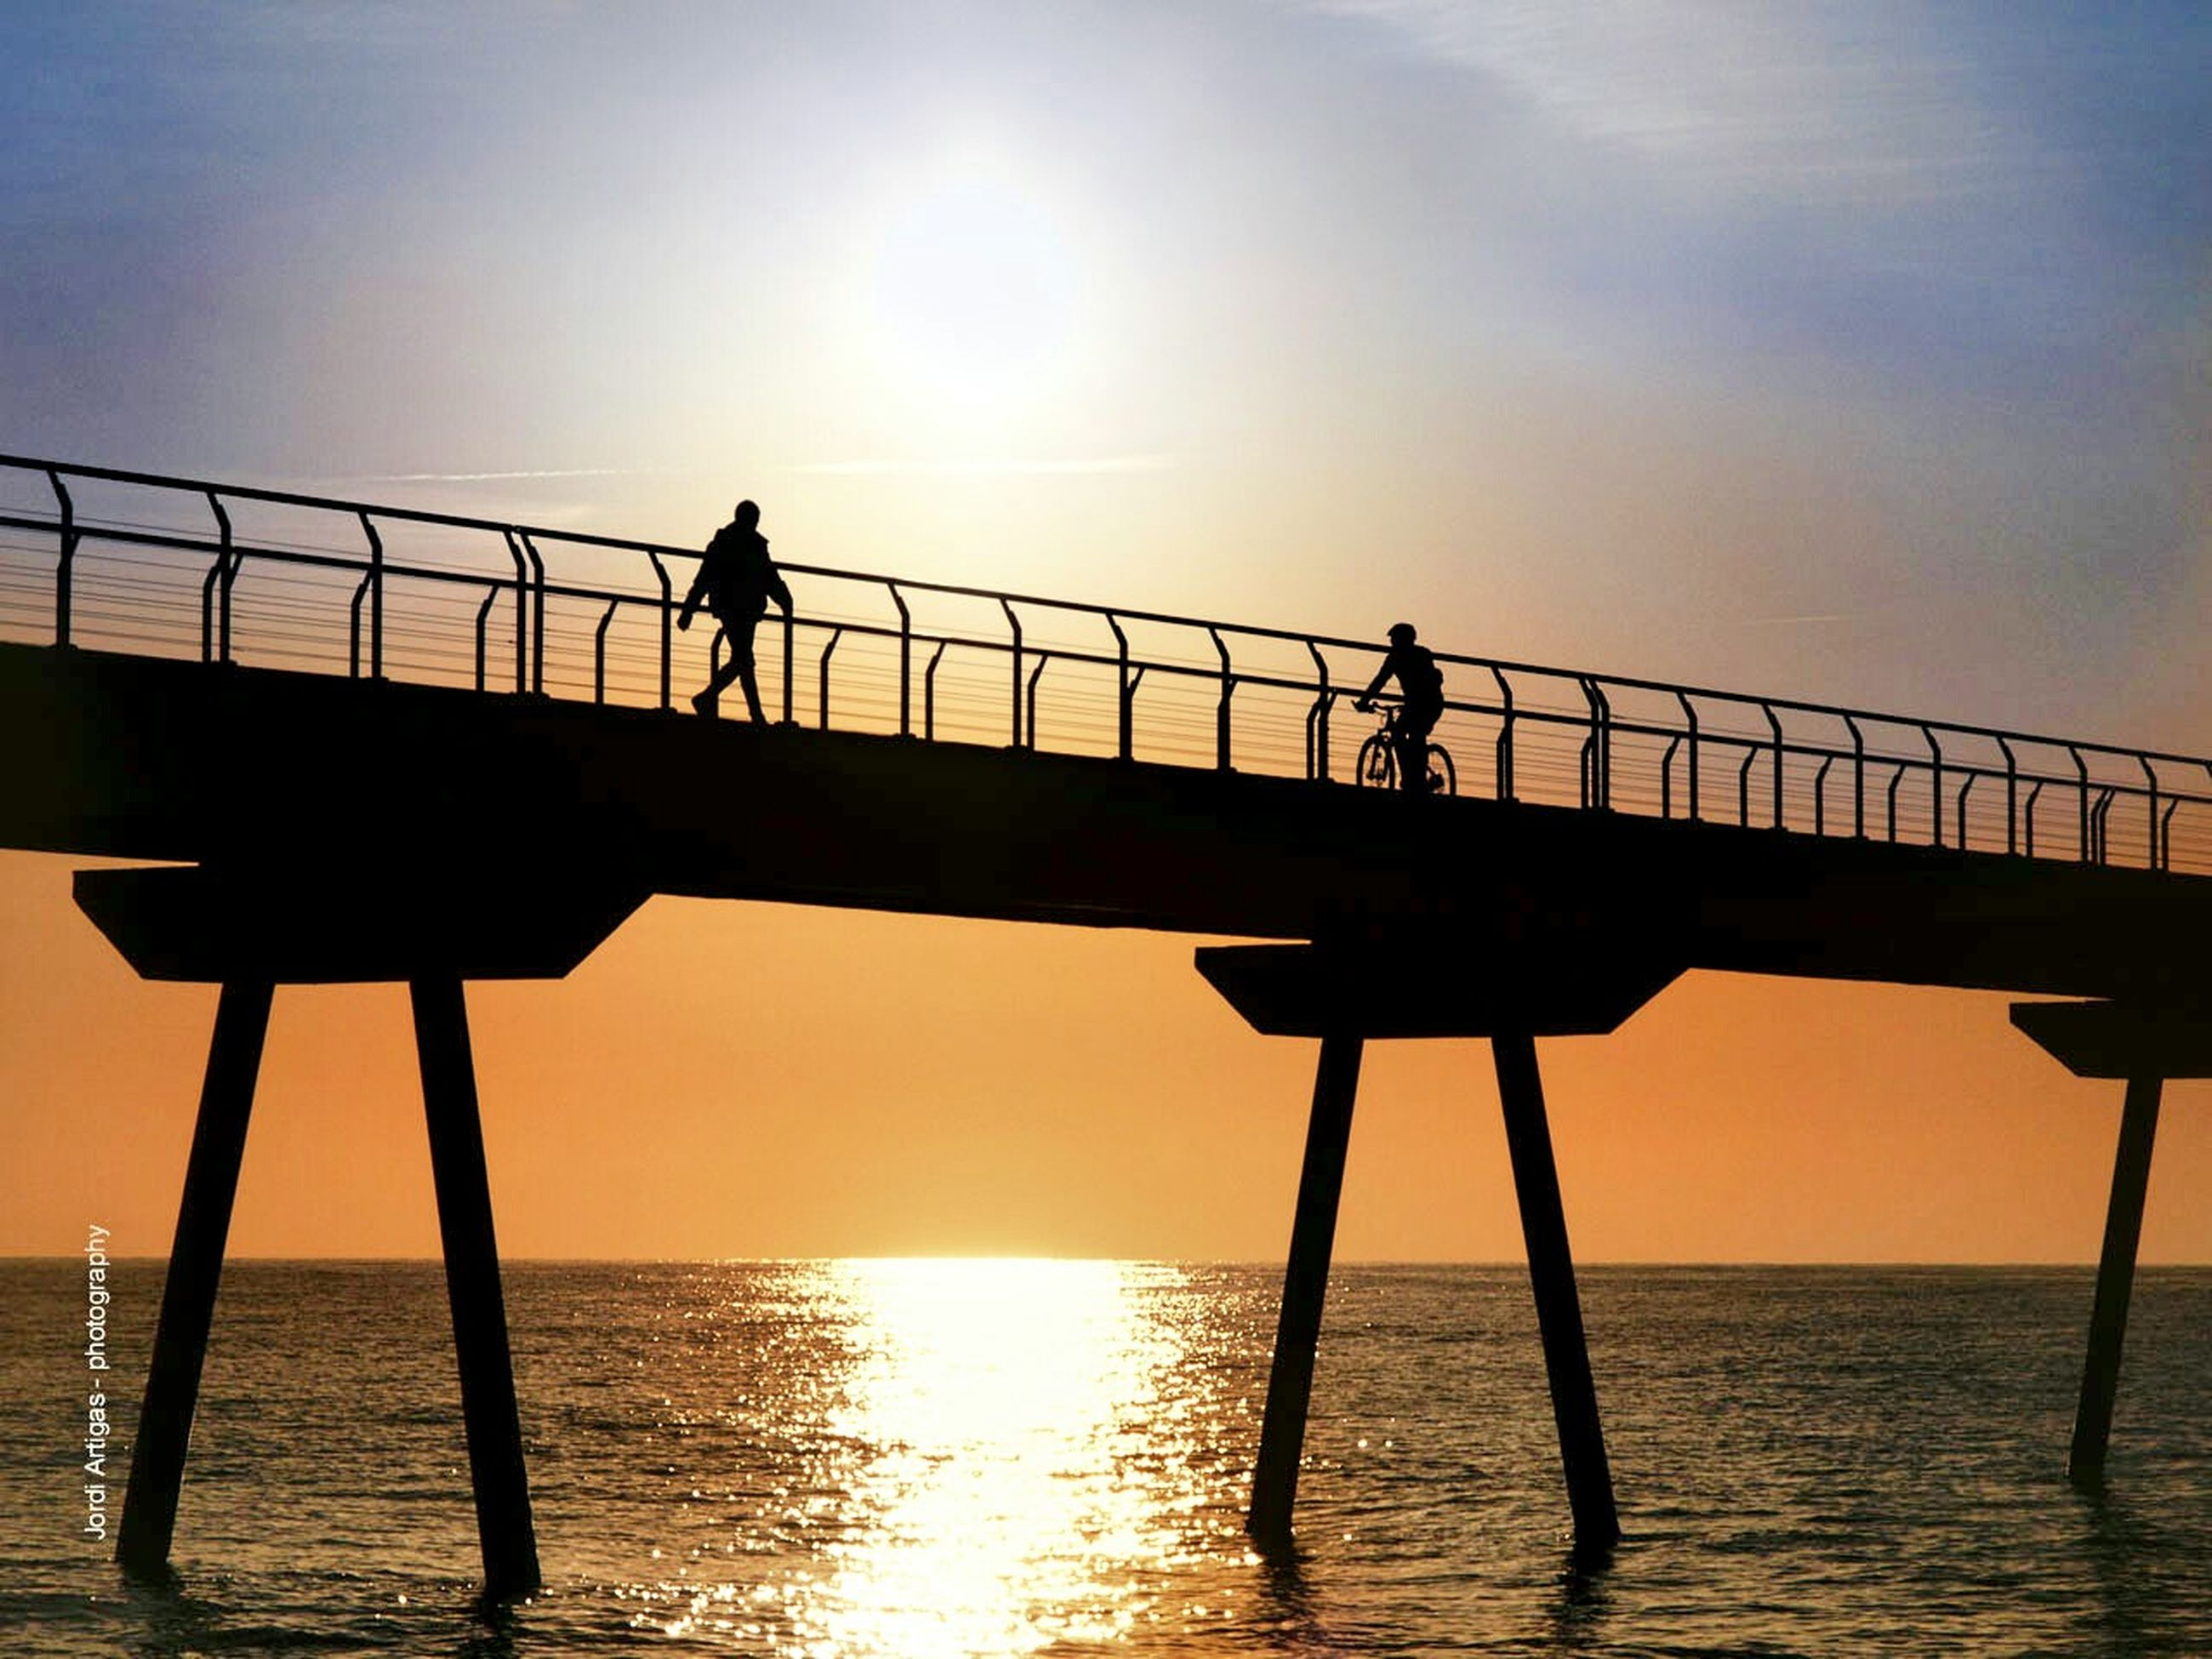 sunset, silhouette, sea, water, sun, horizon over water, sky, orange color, pier, railing, nature, tranquility, scenics, beauty in nature, built structure, low angle view, sunlight, reflection, tranquil scene, outdoors